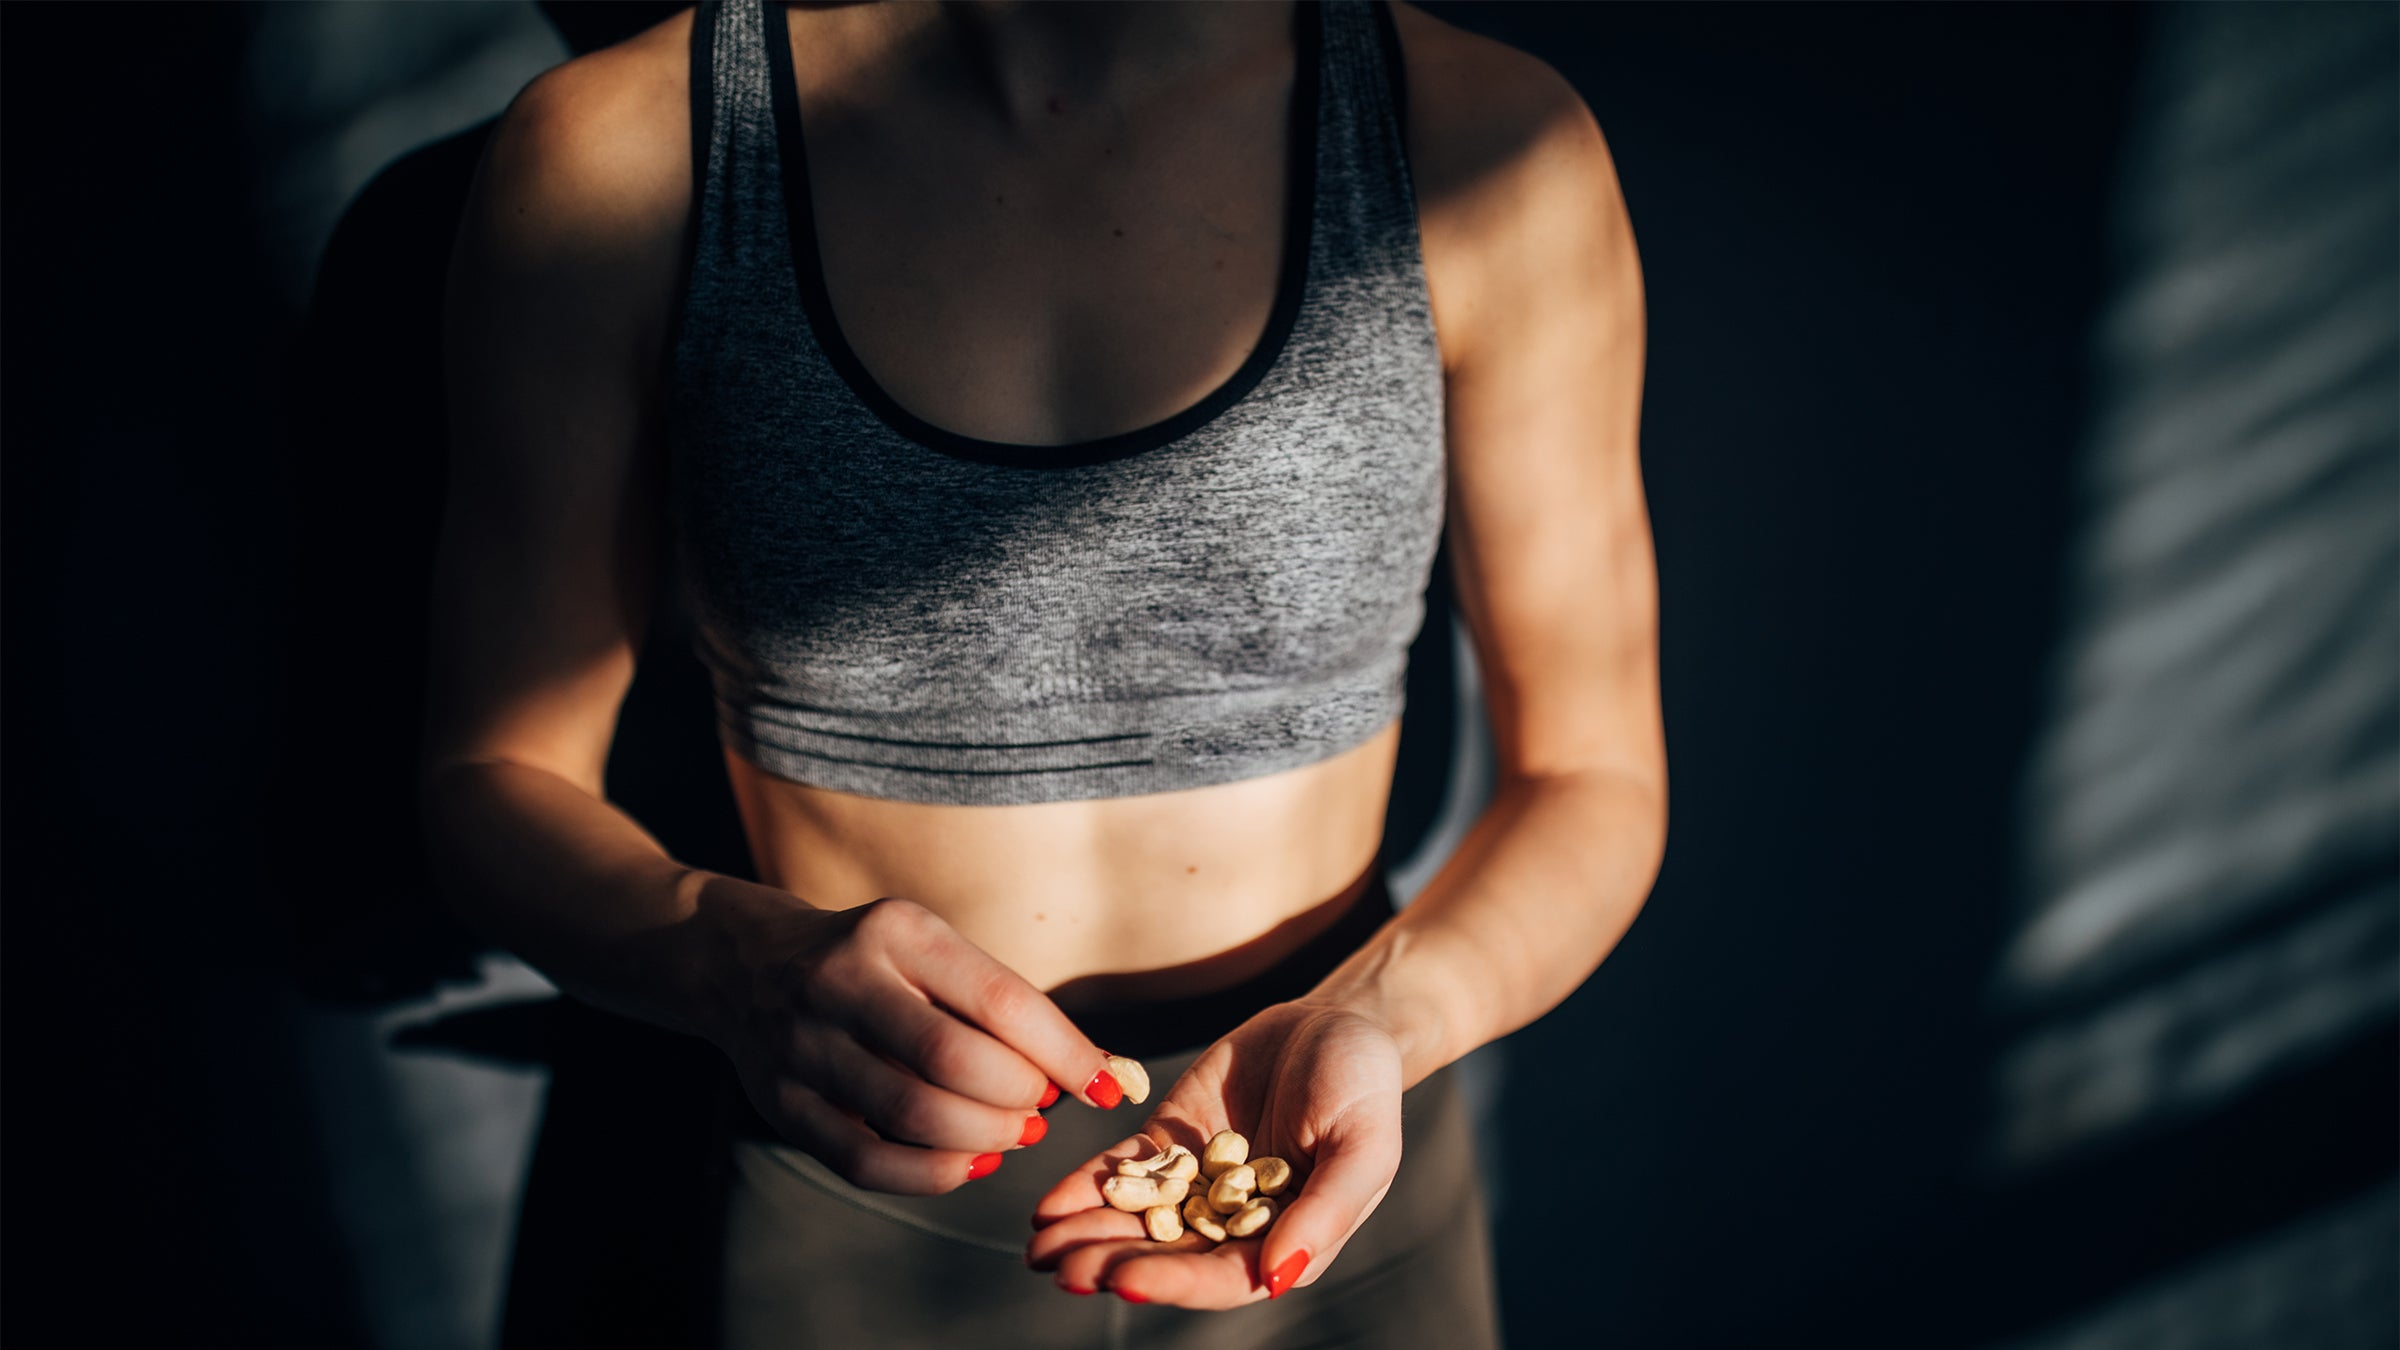 Ask the Nutritionist: Eating After A Workout